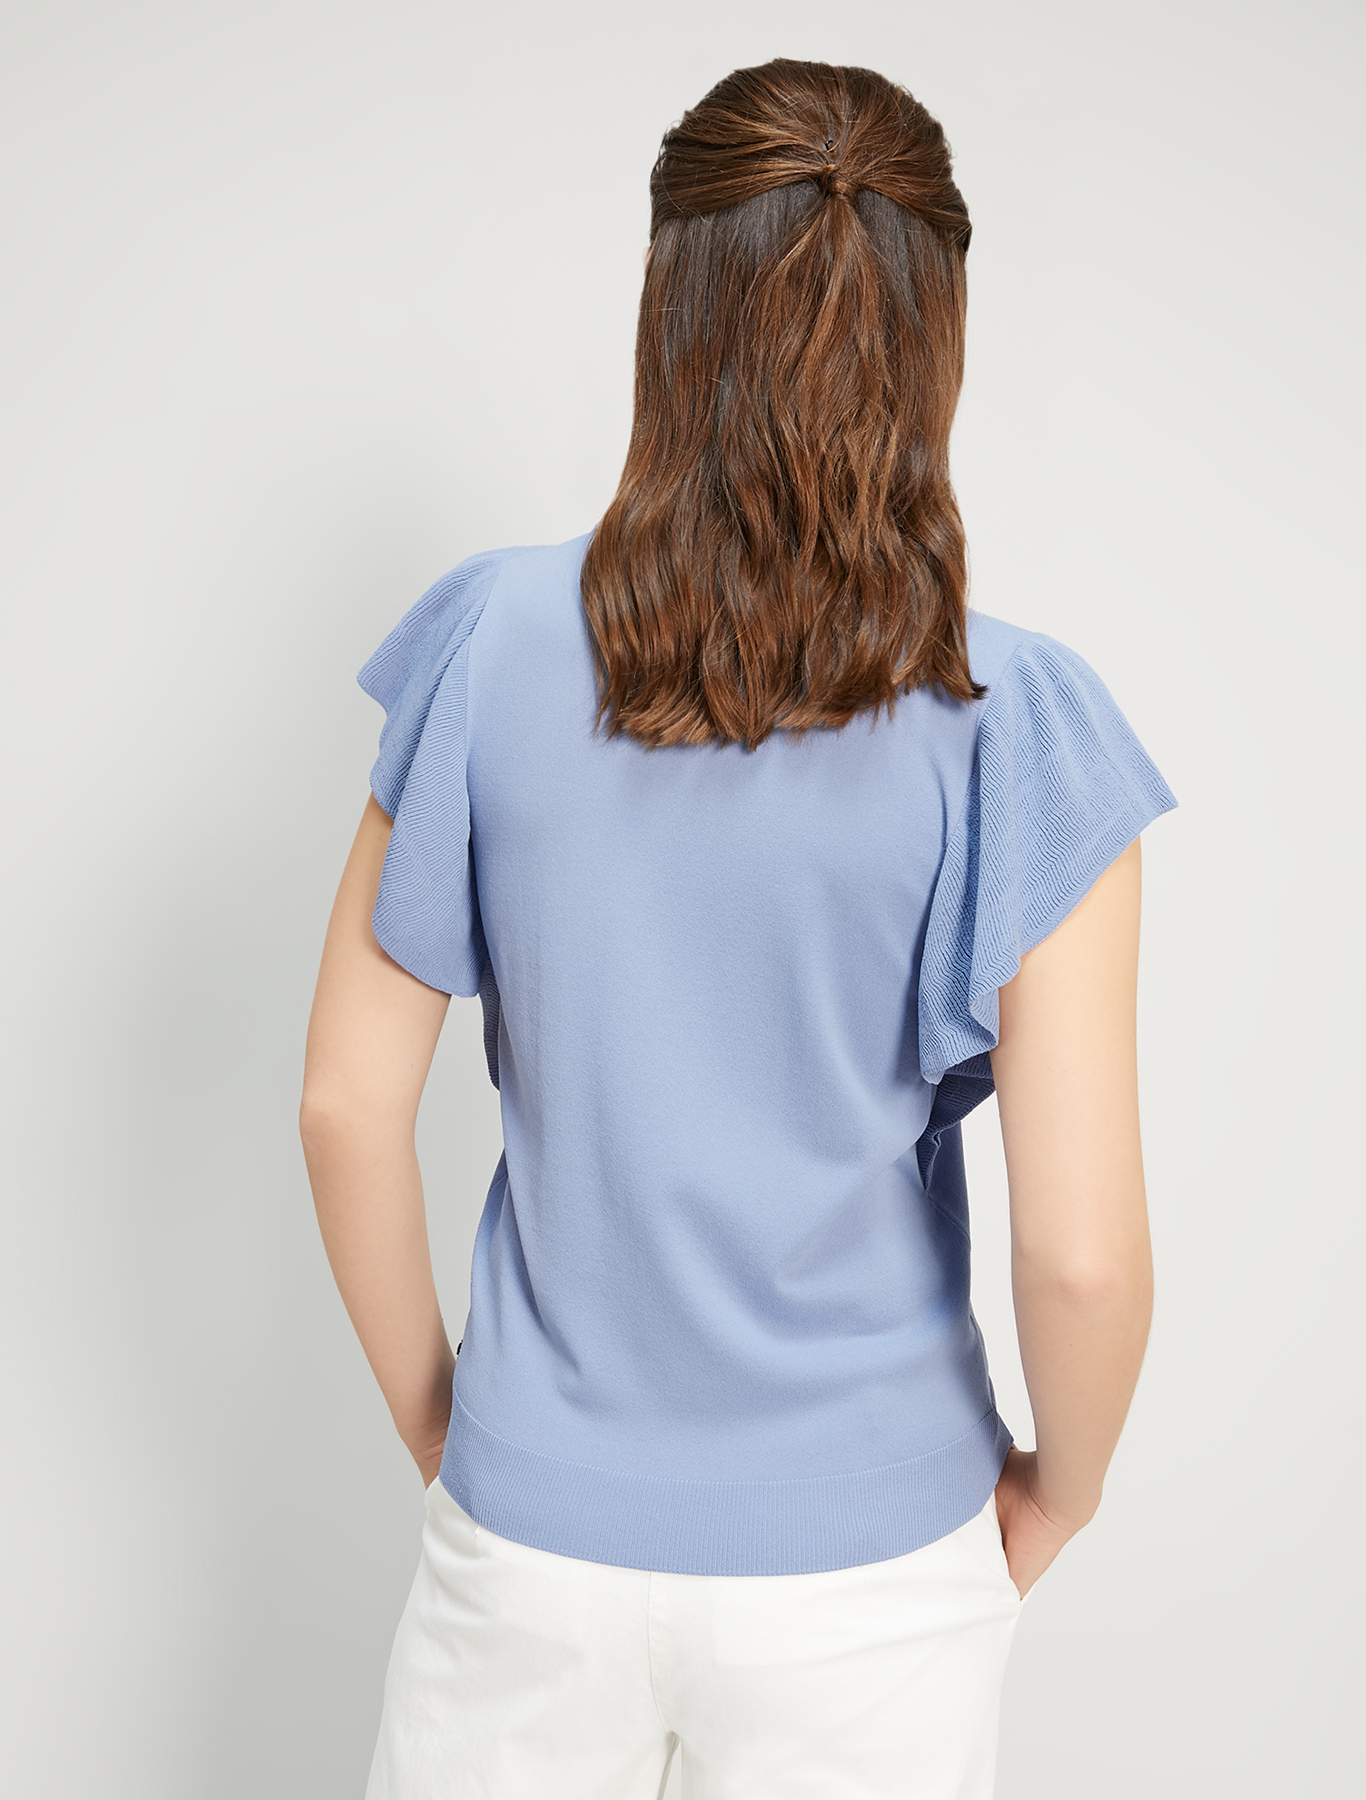 Jumper with butterfly sleeves - air force blue - pennyblack